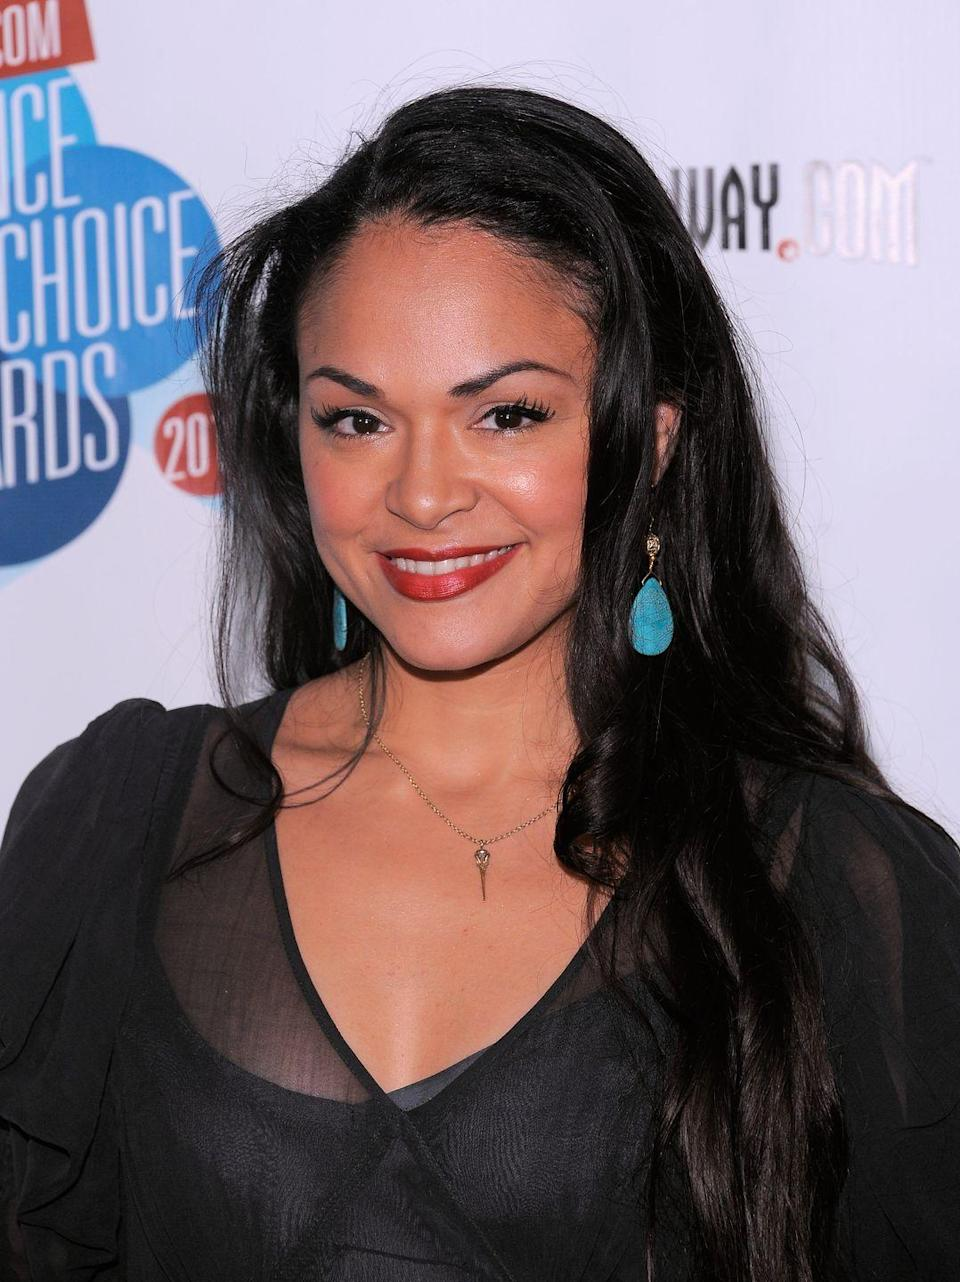 <p>Similar to her other co-stars, Olivio has continued working with Miranda after starring as Vanessa, de la Vega's love interest, in the musical. She's appeared in <em>Hamilton</em>, the 2009 musical <em>West Side Story</em>, and the 2019 musical of <em>Moulin Rouge</em>, which earned her a 2020 Tony Award nomination for Best Actress.</p>